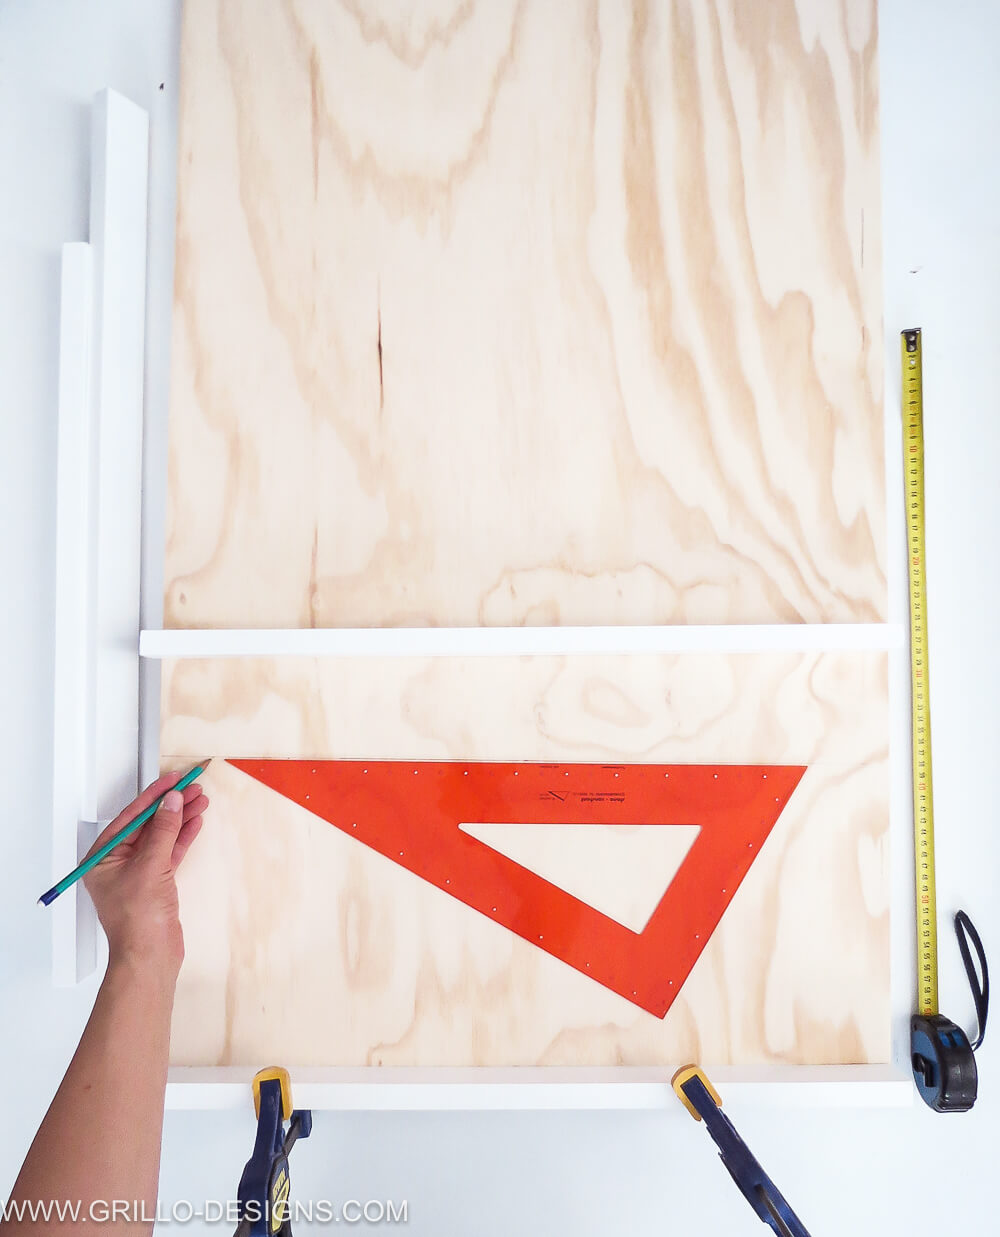 Apply the shelves to the plywood panel to make a soft toy storage shelf / grillo designs